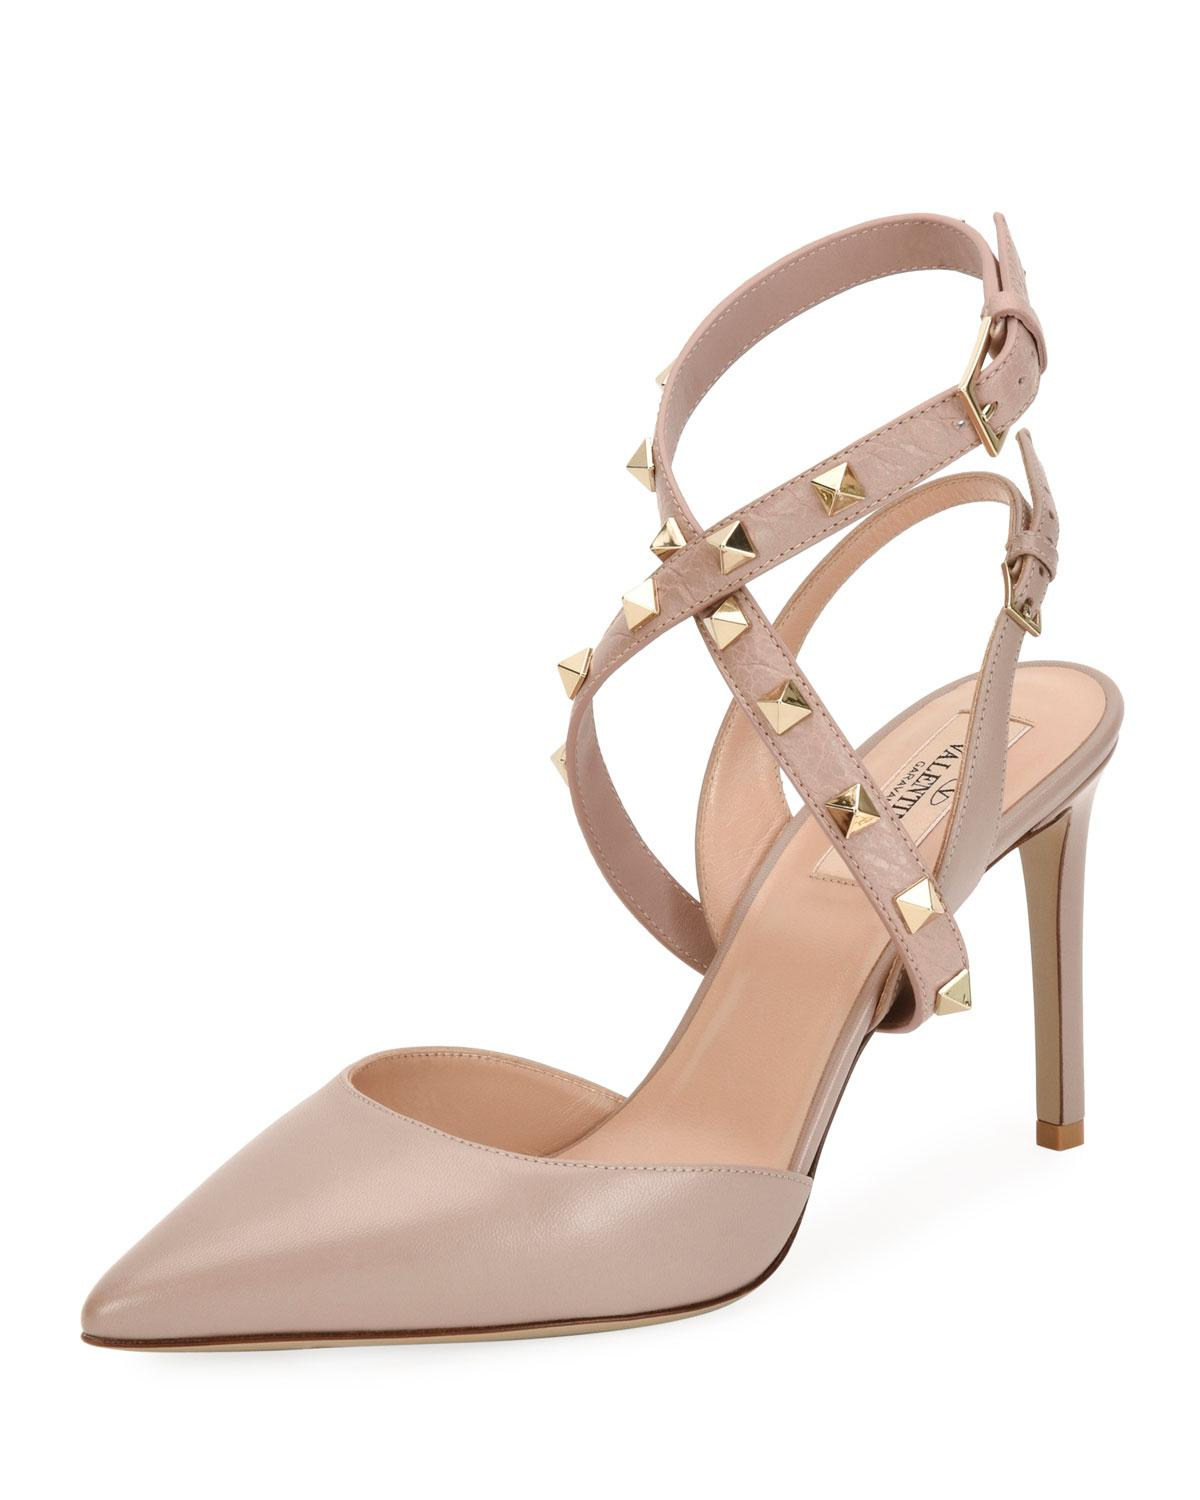 Fake Jimmy Choo Shoes To Buy